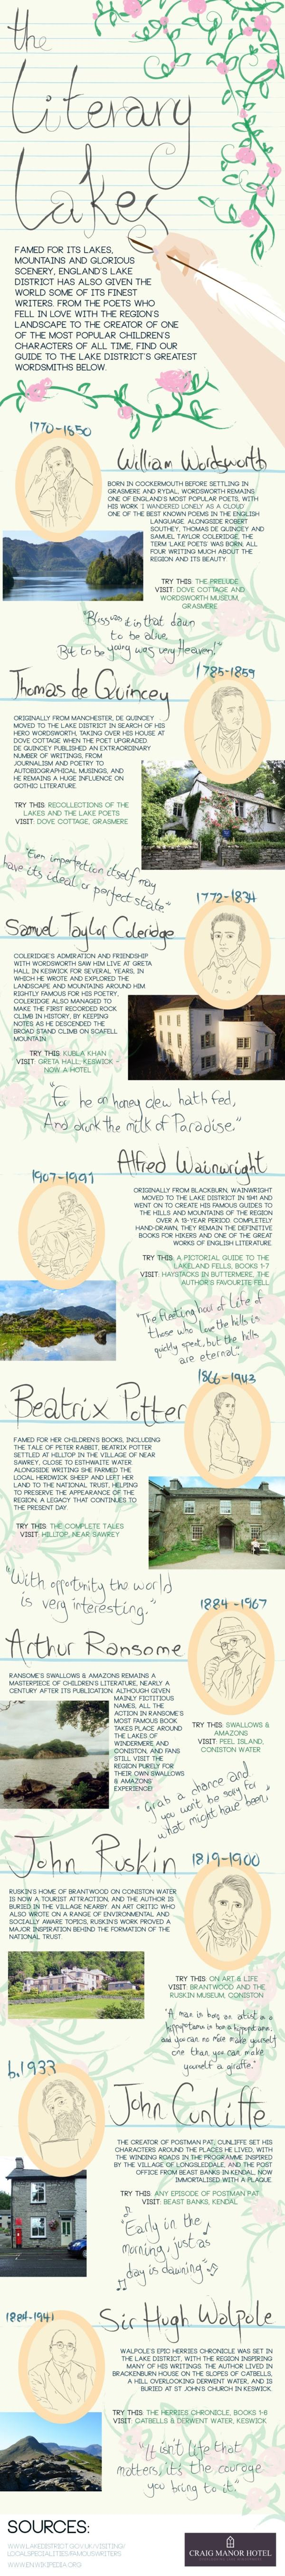 Infographic: The Literary Lakes Infographic